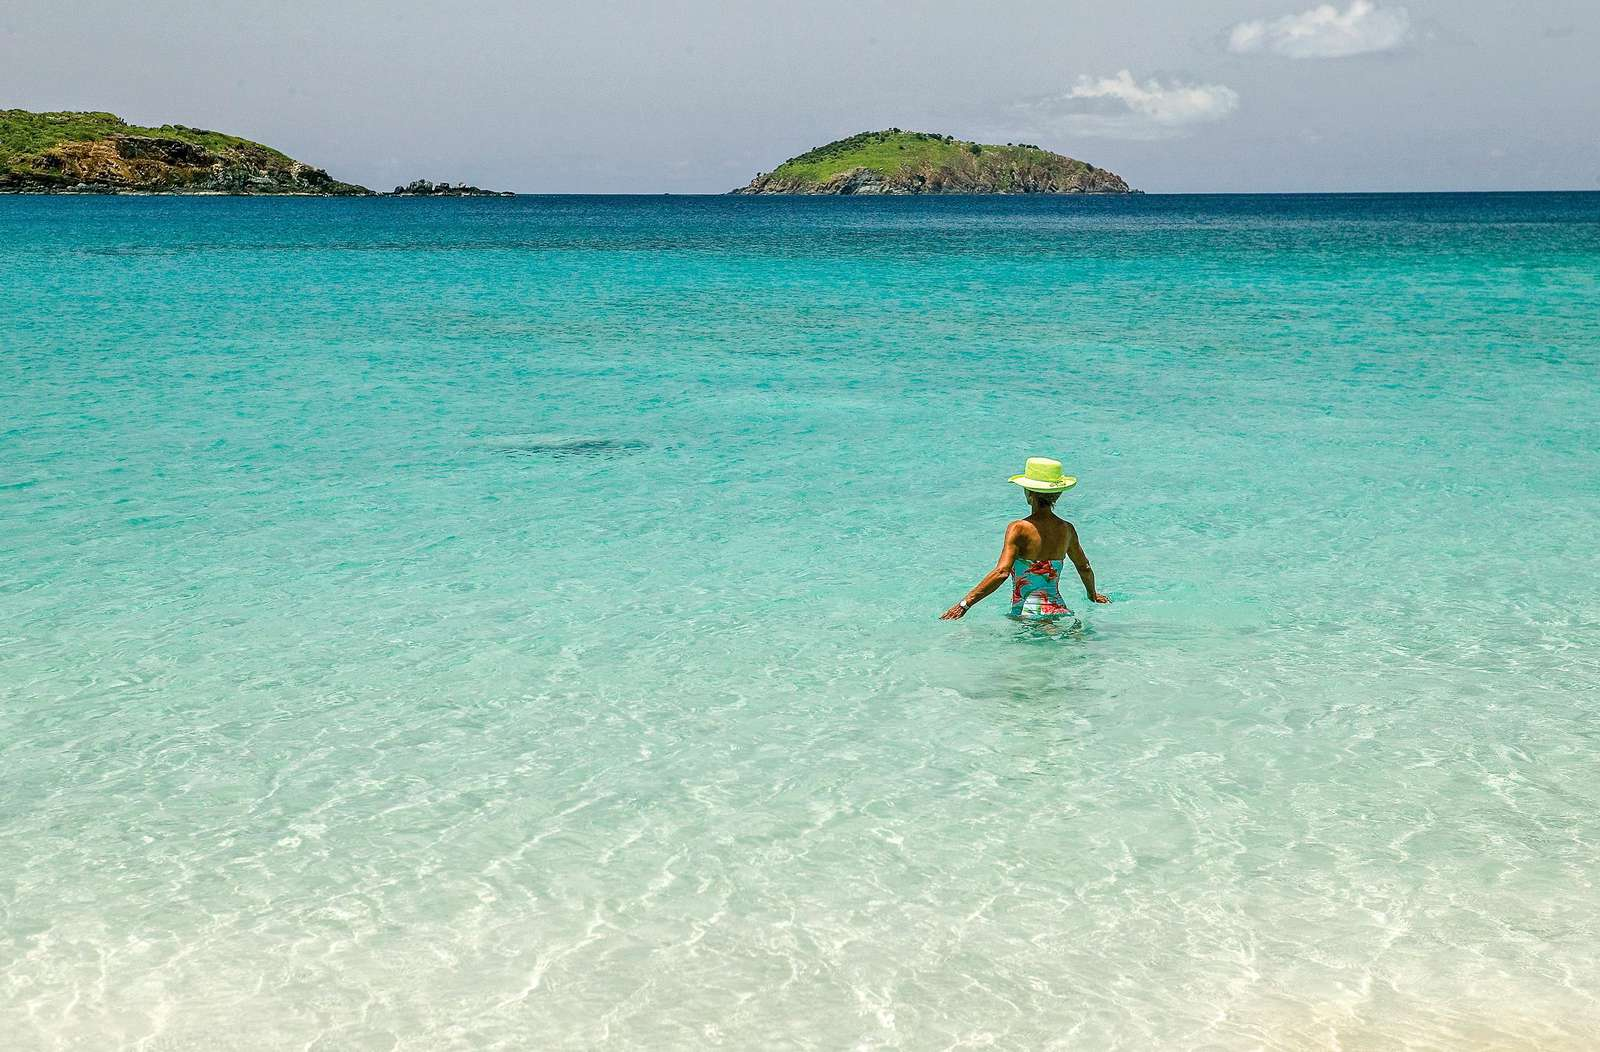 The calm, turquoise water is calling your name